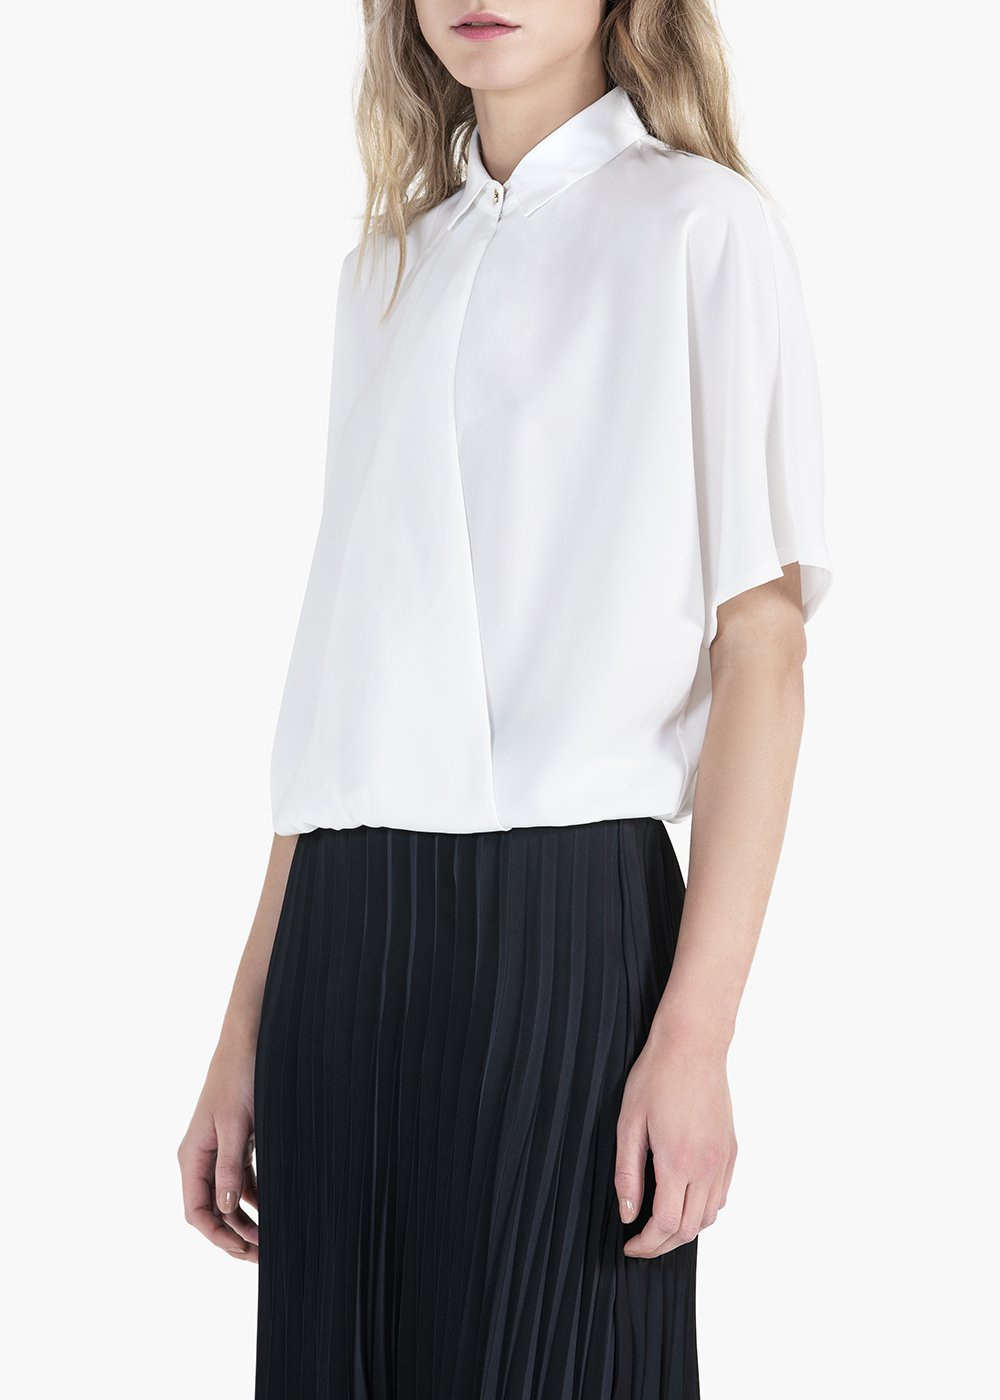 Carina blouse with 3/4 sleeve and collar - White - Woman